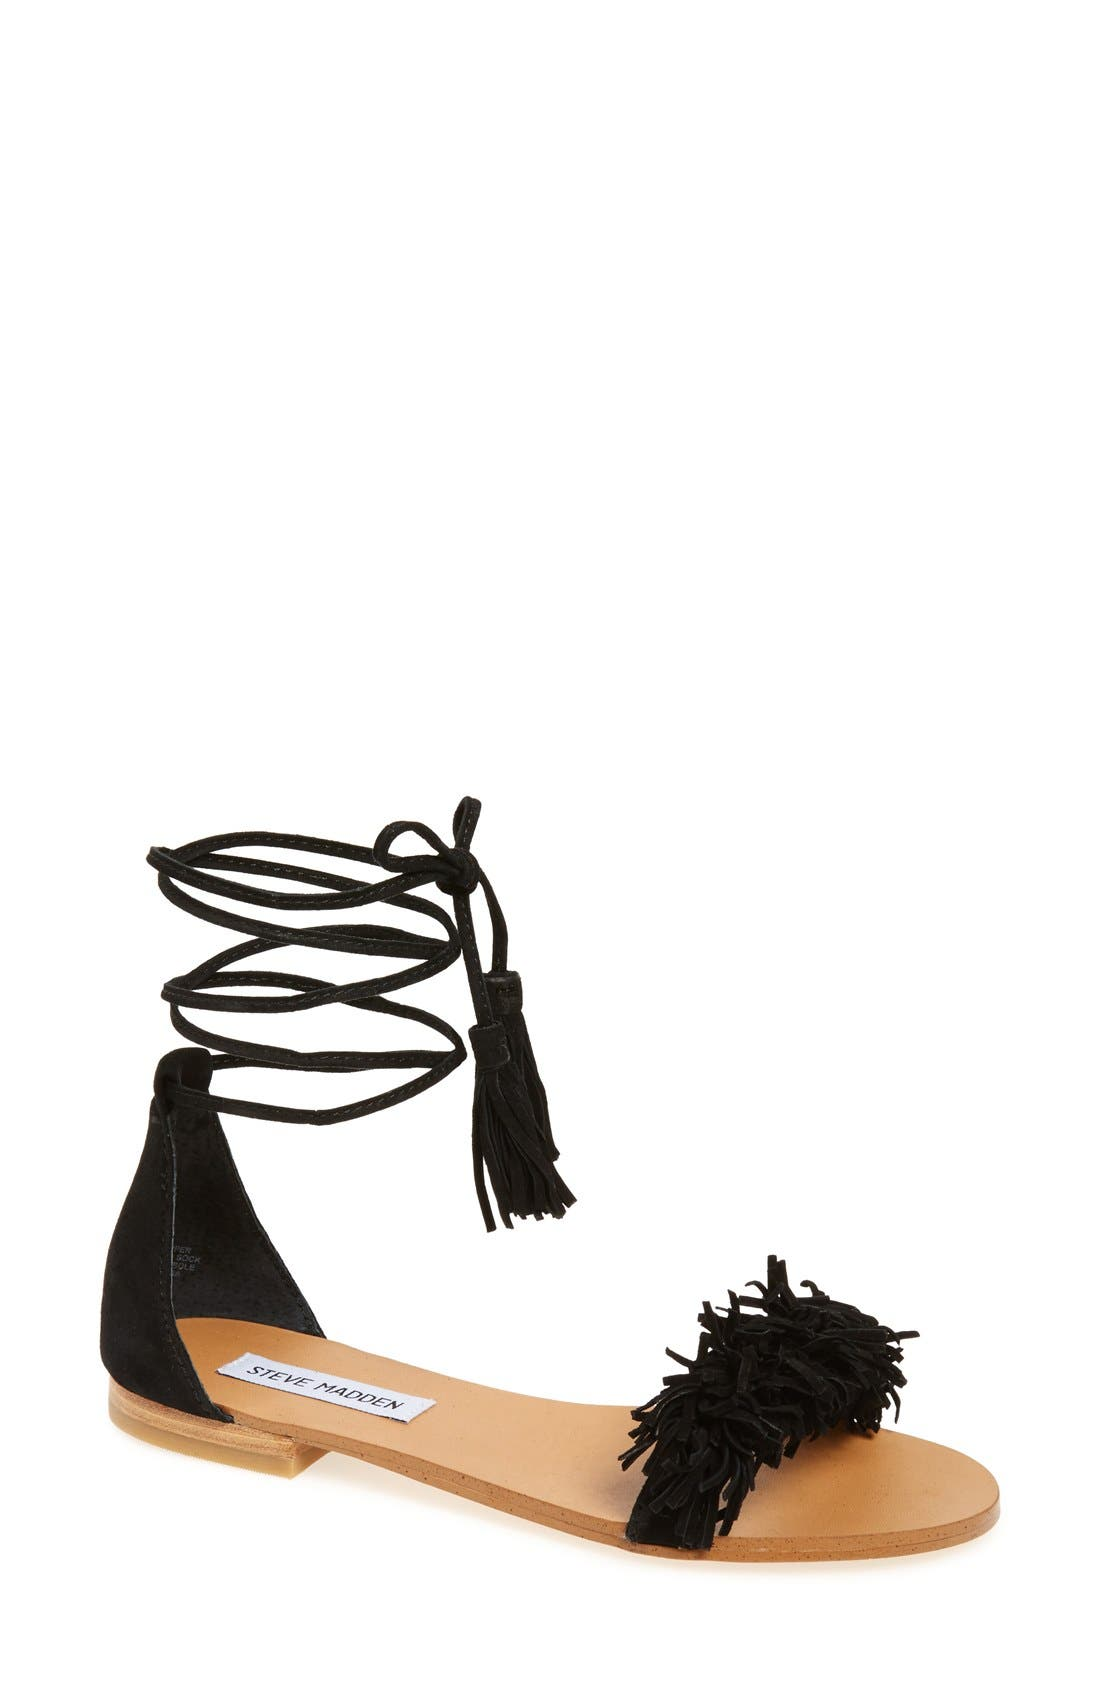 'Sweetyy' Lace-Up Sandal,                             Main thumbnail 1, color,                             006